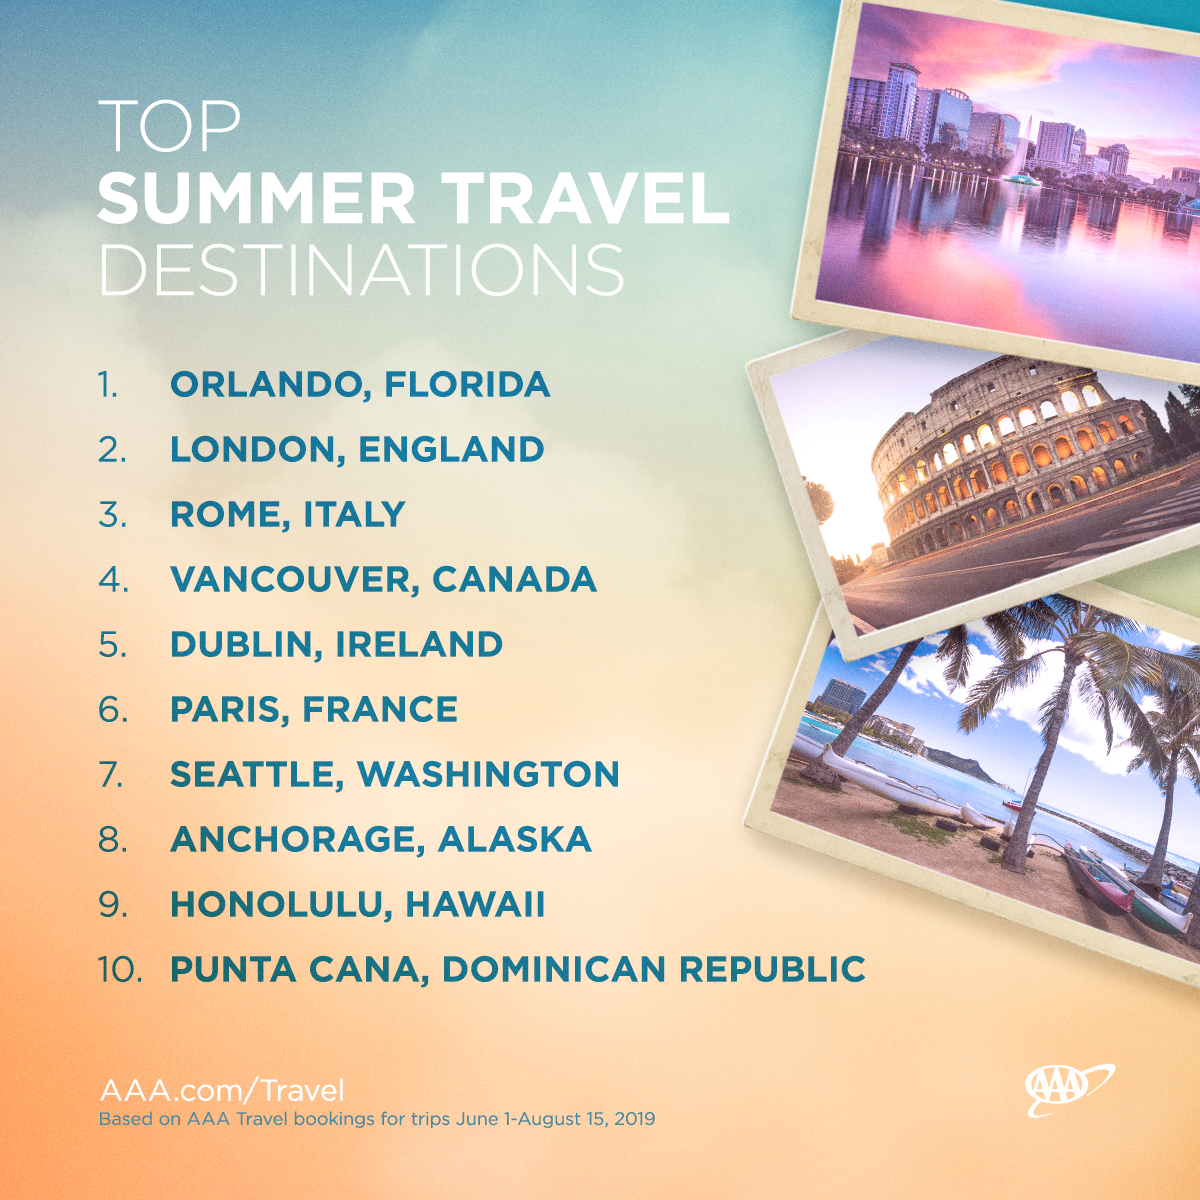 AAA summer travel forecast: Theme parks, European vacations top